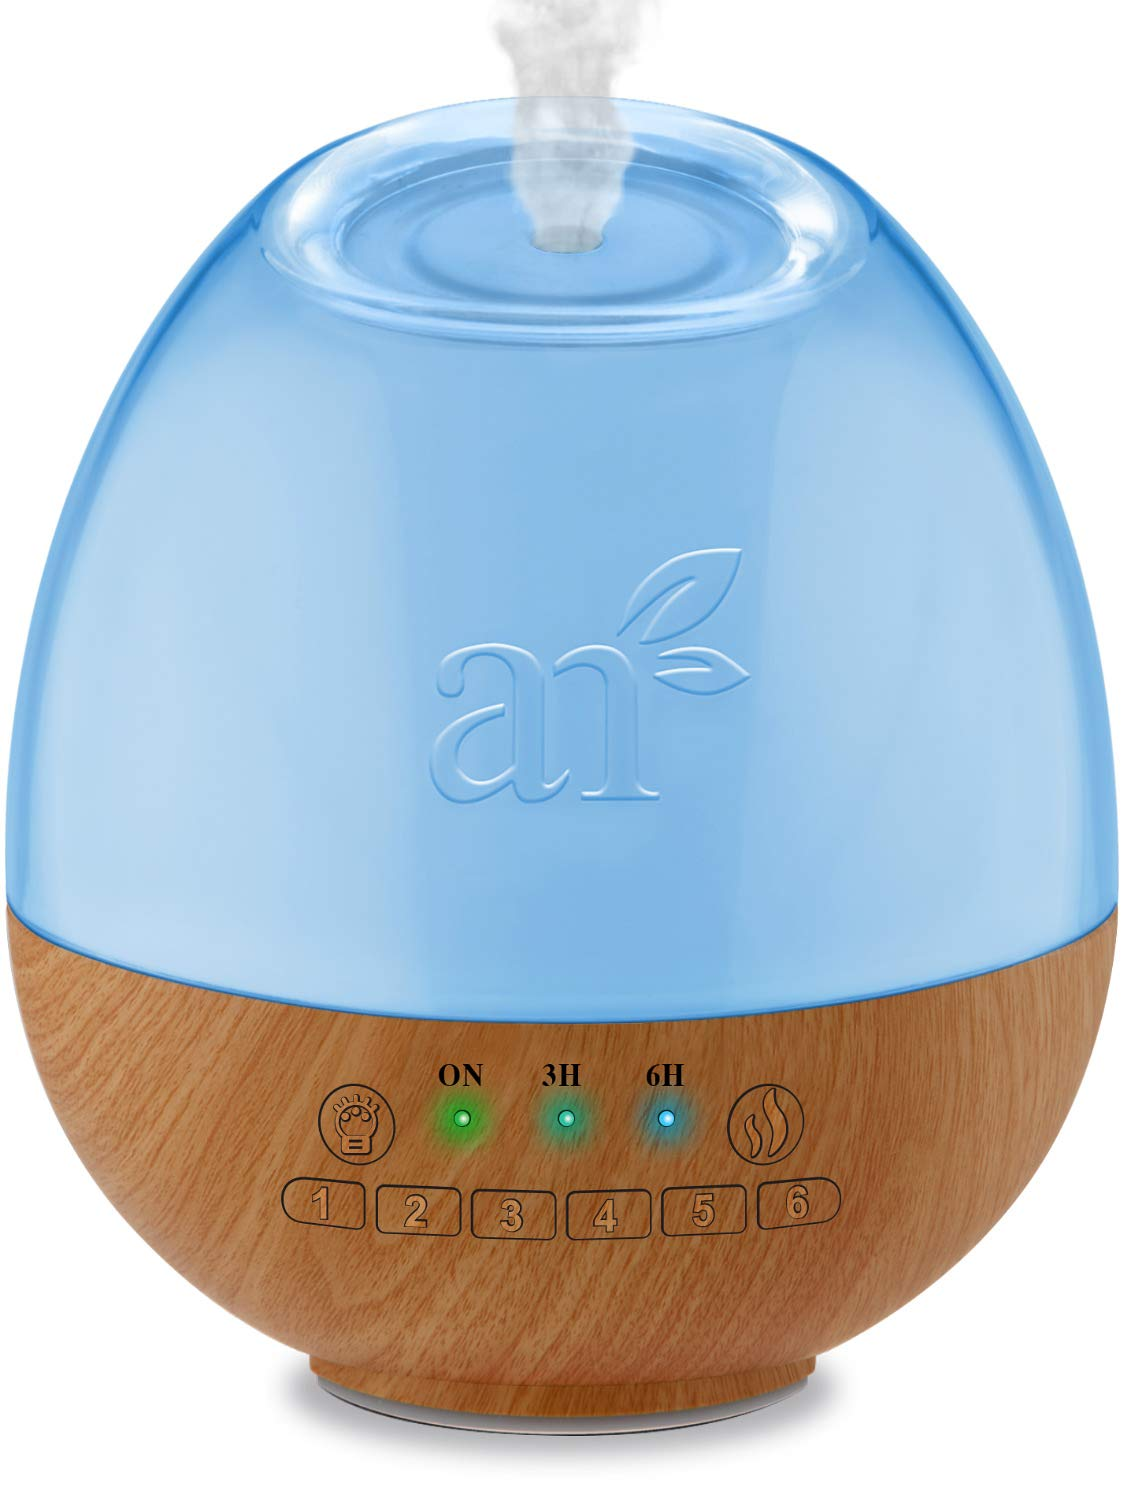 ArtNaturals Sound Machine & Essential Oil Diffuser - (300ml Tank) - 6 Calming and Natural Sleep Sounds - Aromatherapy and White Noise for Relaxation and Sleeping - Baby, Kids, and Adults - Night Light by ArtNaturals